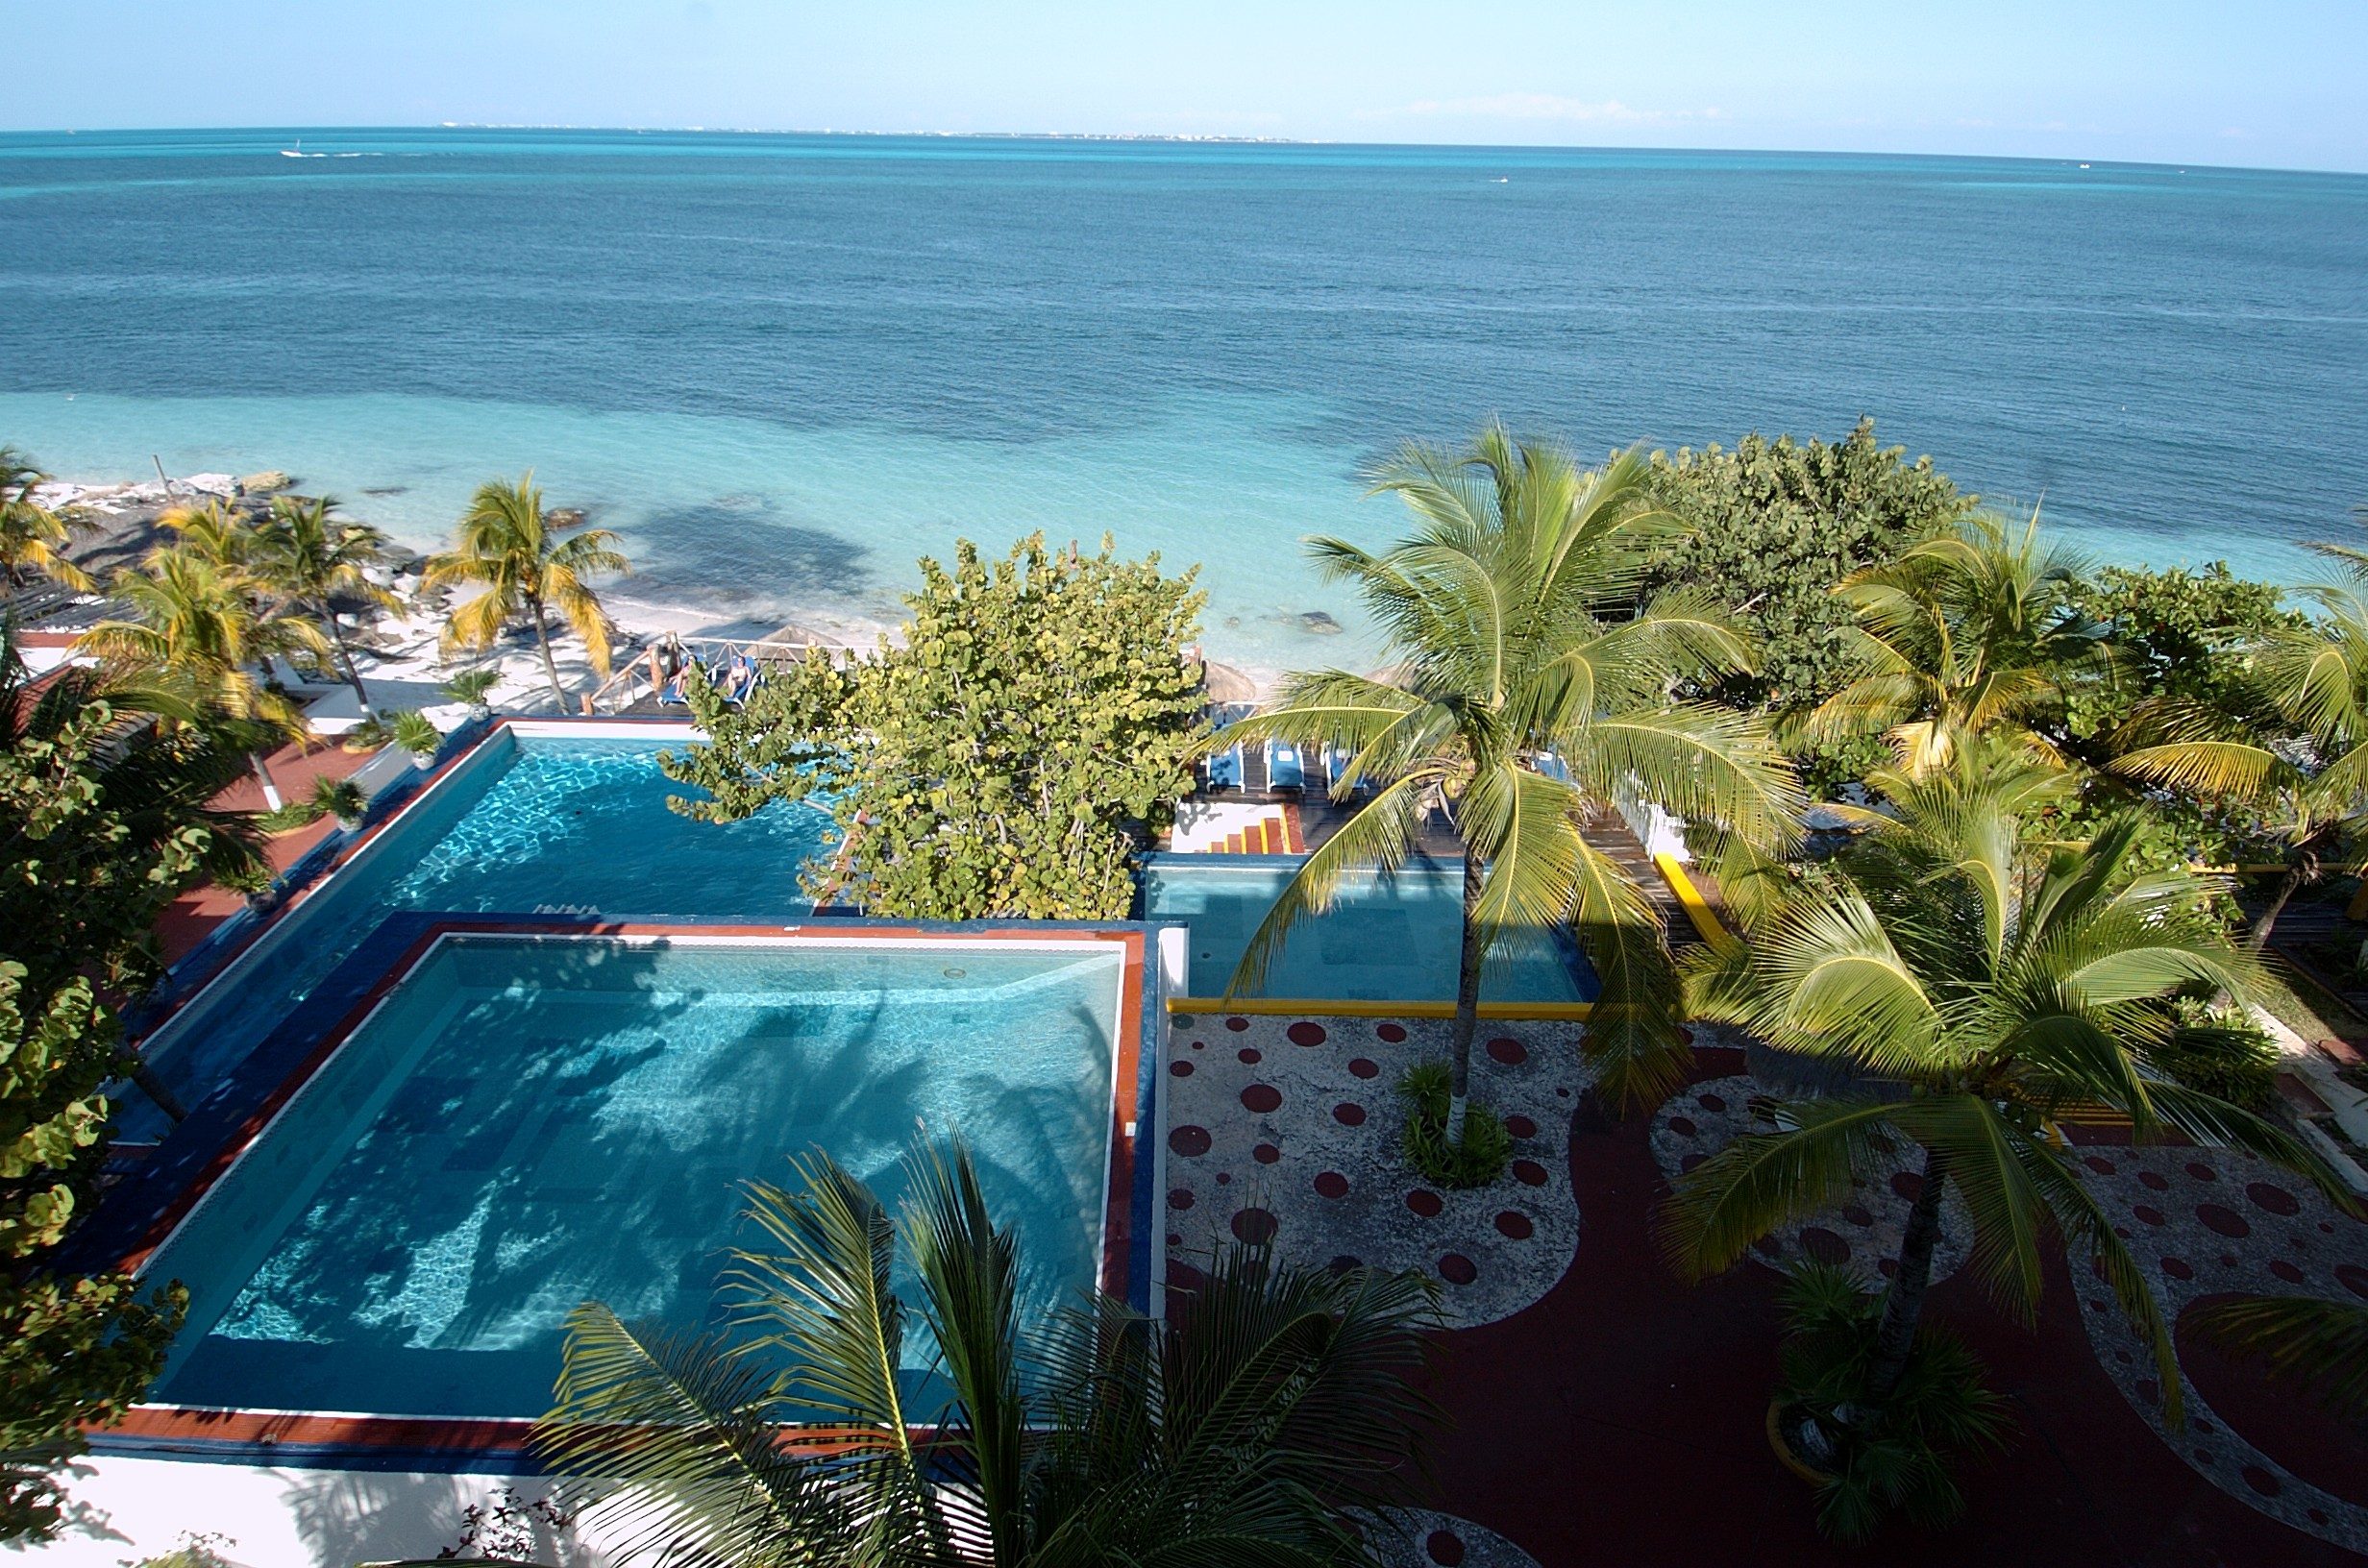 Panoramica del hotel Maya Caribe Beach House by Faranda Hotels